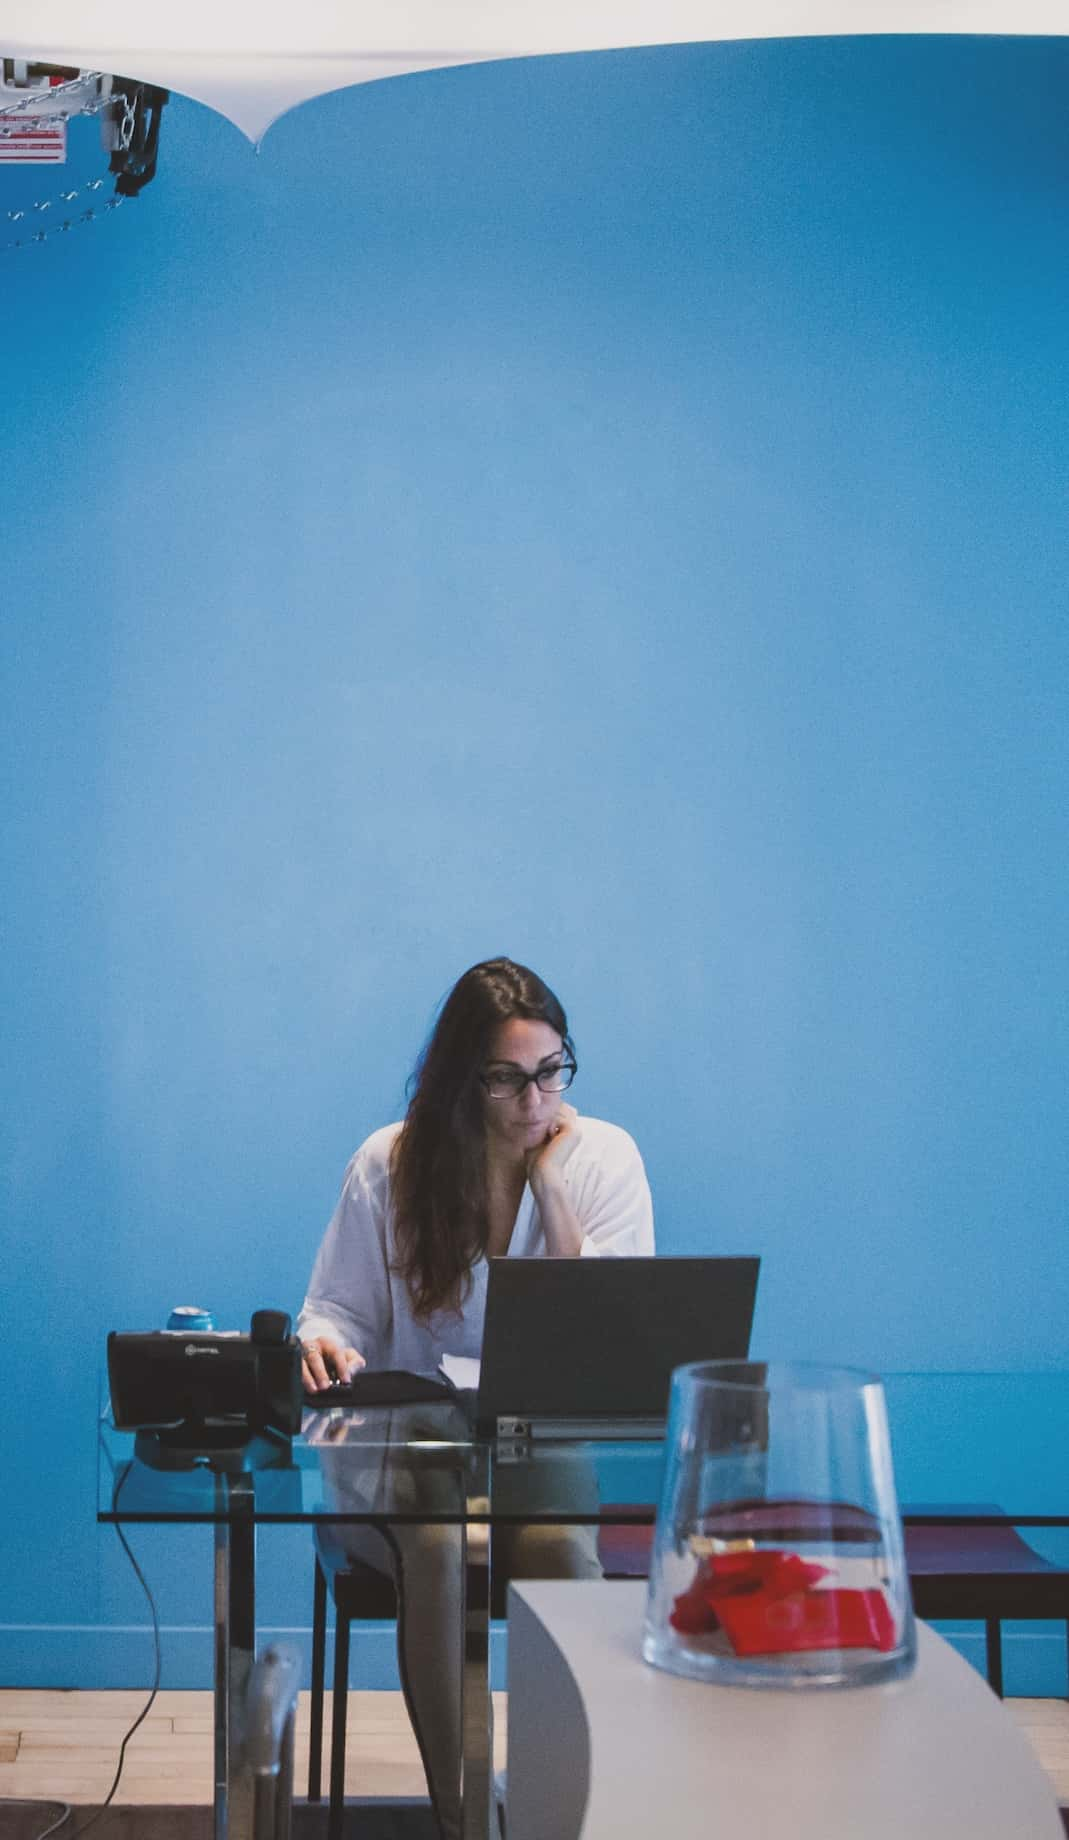 Tall photo of a woman working on her computer at a desk. Contact Us for more information about our services